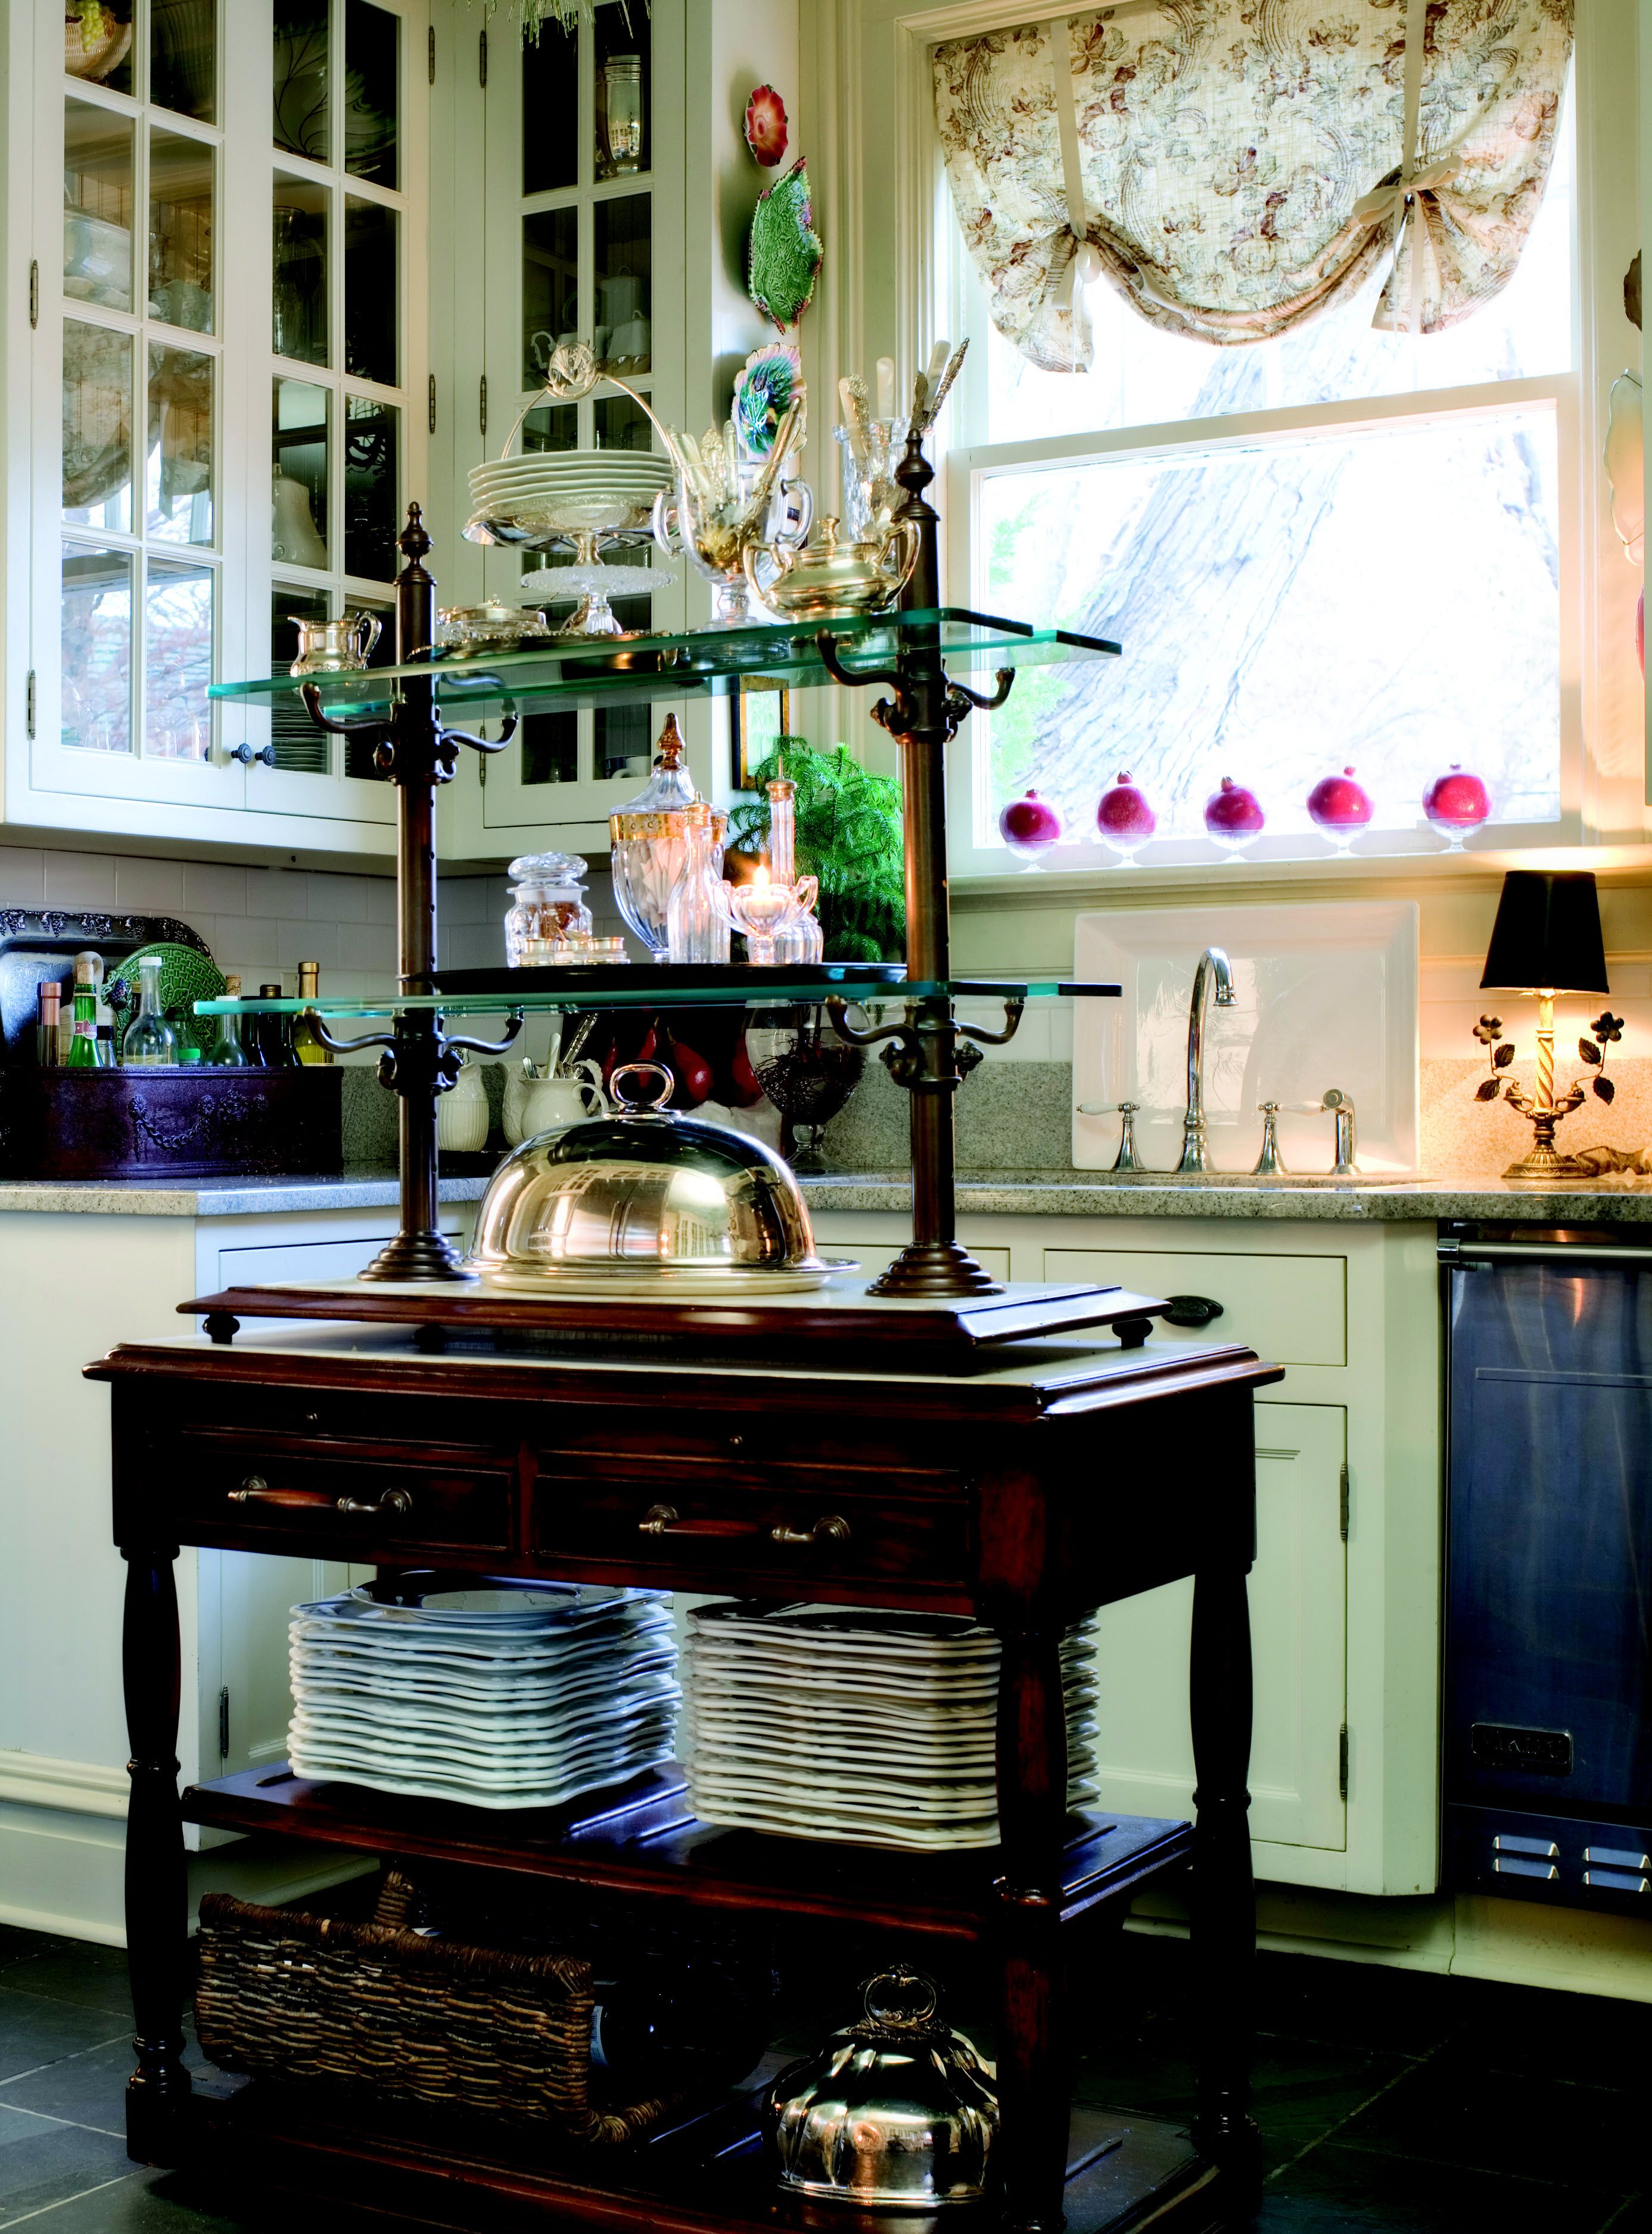 Eclectic Traditional Kitchen Ideas on eclectic design, eclectic lighting, eclectic cottage kitchens, eclectic christmas, eclectic chairs, eclectic fashion, eclectic outdoor furniture, eclectic fireplace, eclectic furniture and decor, eclectic interior decorating, design on a dime ideas, eclectic cabinets, eclectic bedroom furniture, eclectic small kitchens,